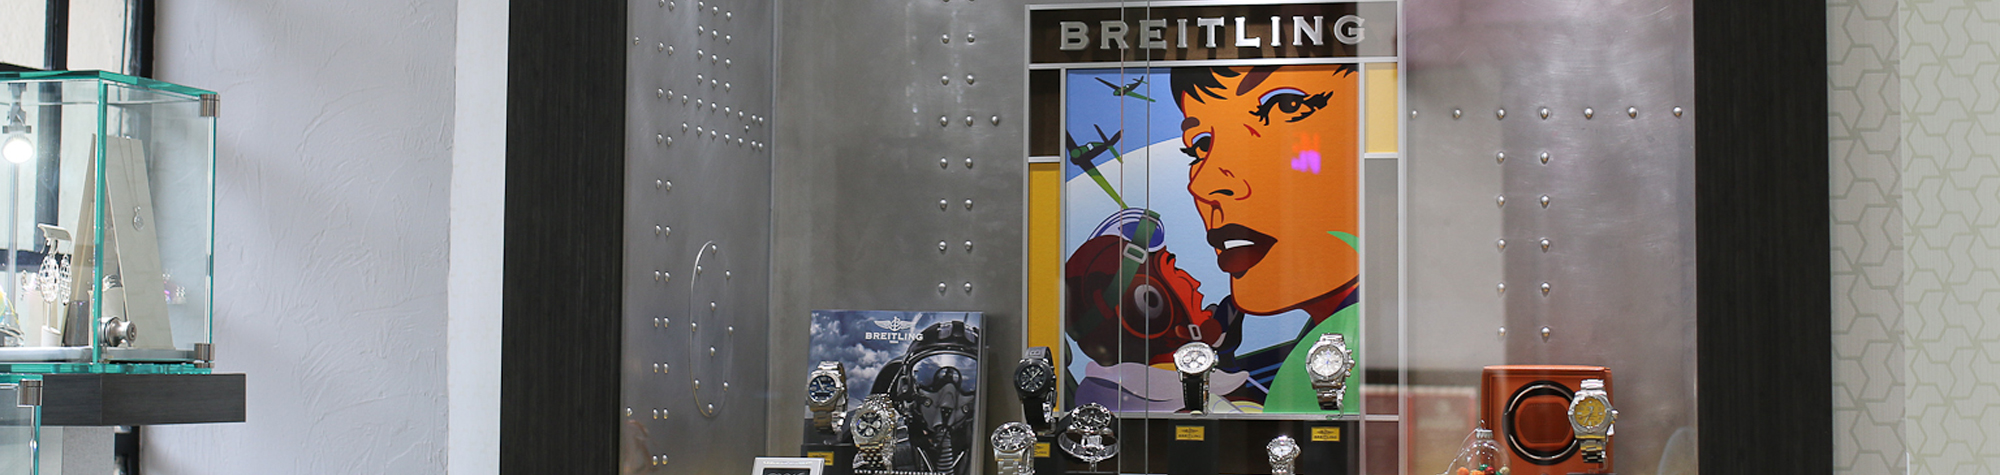 Breitling Watches available at Blue Water Jewelers in St. Augustine FL -